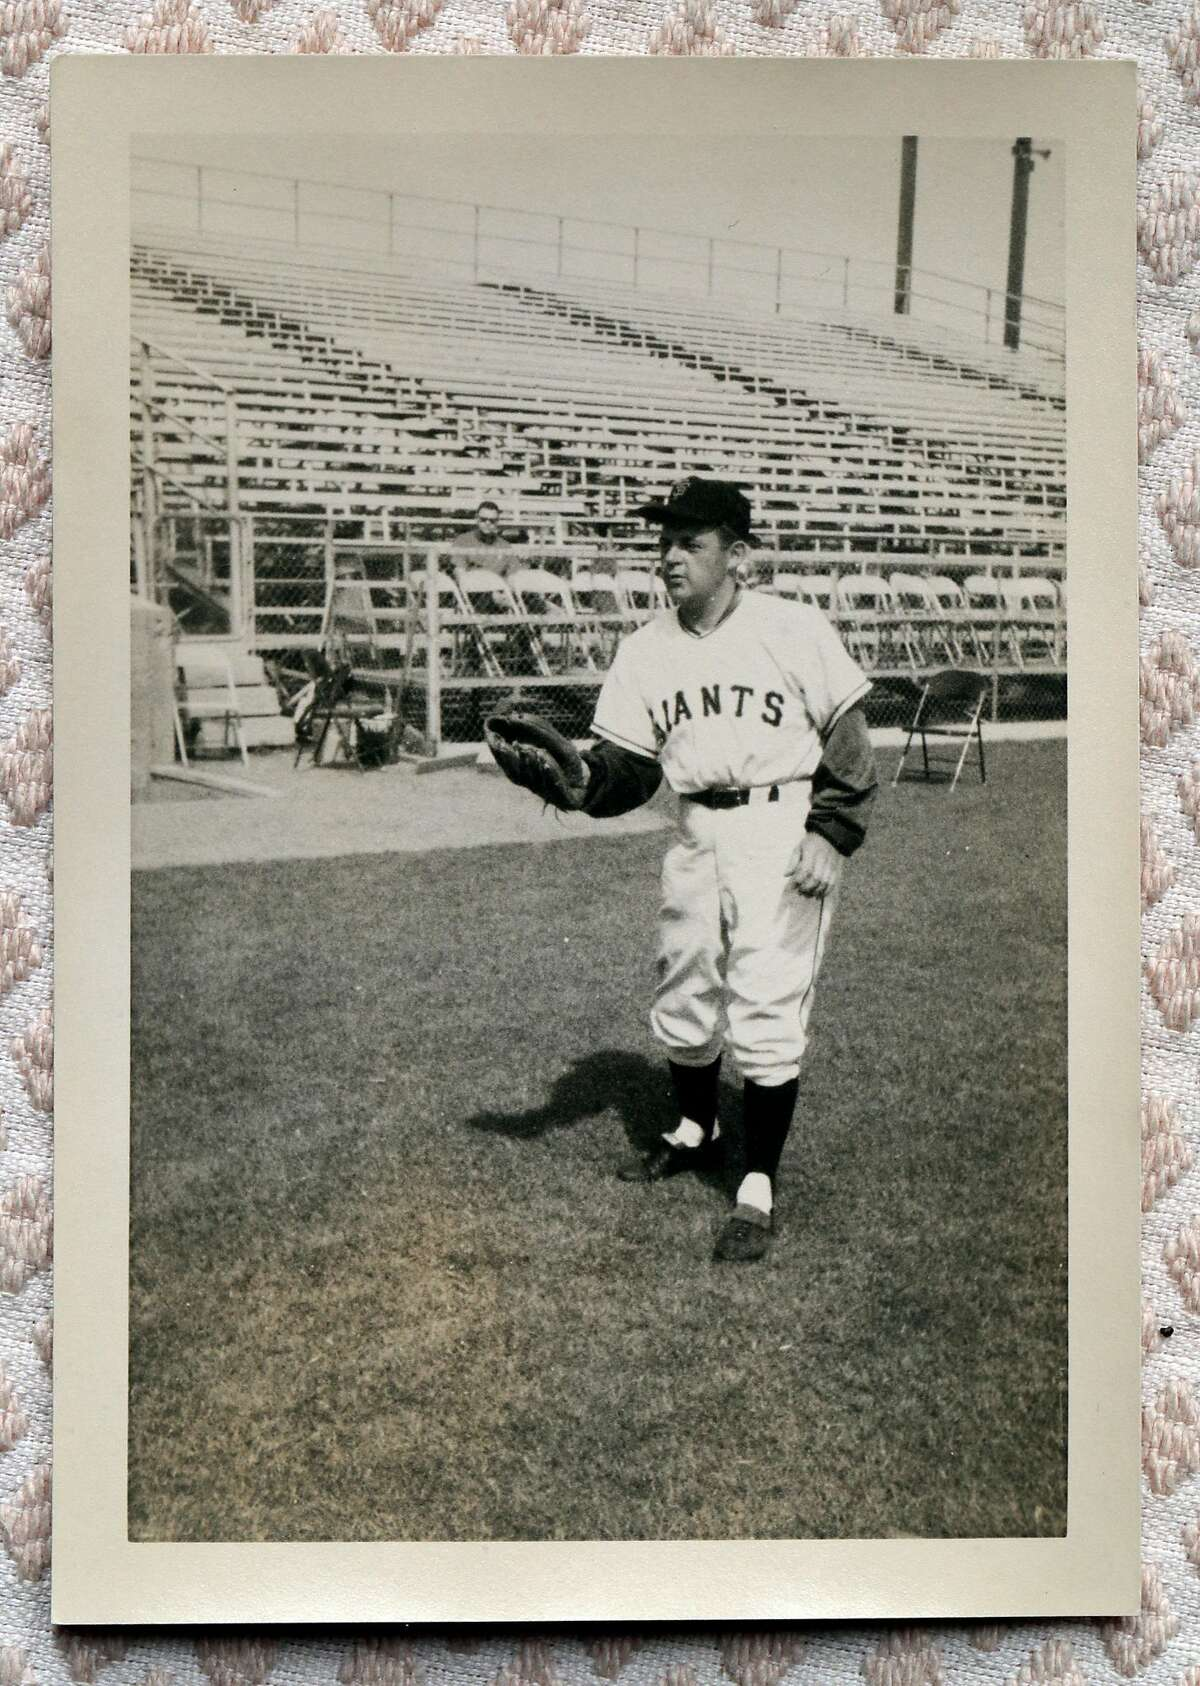 Bob Lurie in a 1958 photo dressed in a Giants uniform at his home in Atherton, Calif., on Sunday, February 14, 2021. In 1981, Bob Lurie hired Frank Robinson, the first Black manager in the National League.